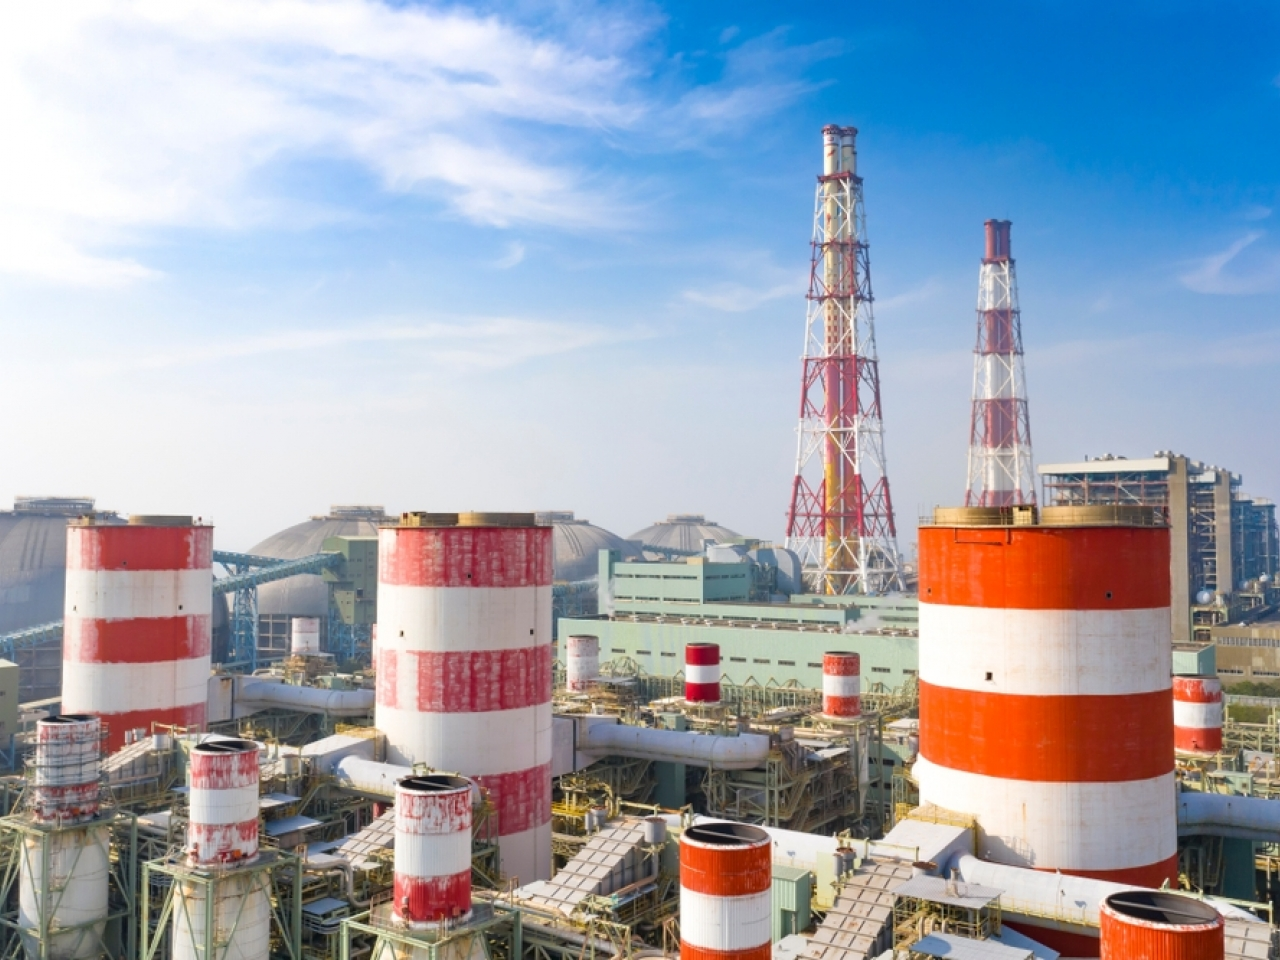 Authorities said there was an outage at the Hsinta Power Plant in Kaohsiung at around 2:30pm. File image: Shutterstock